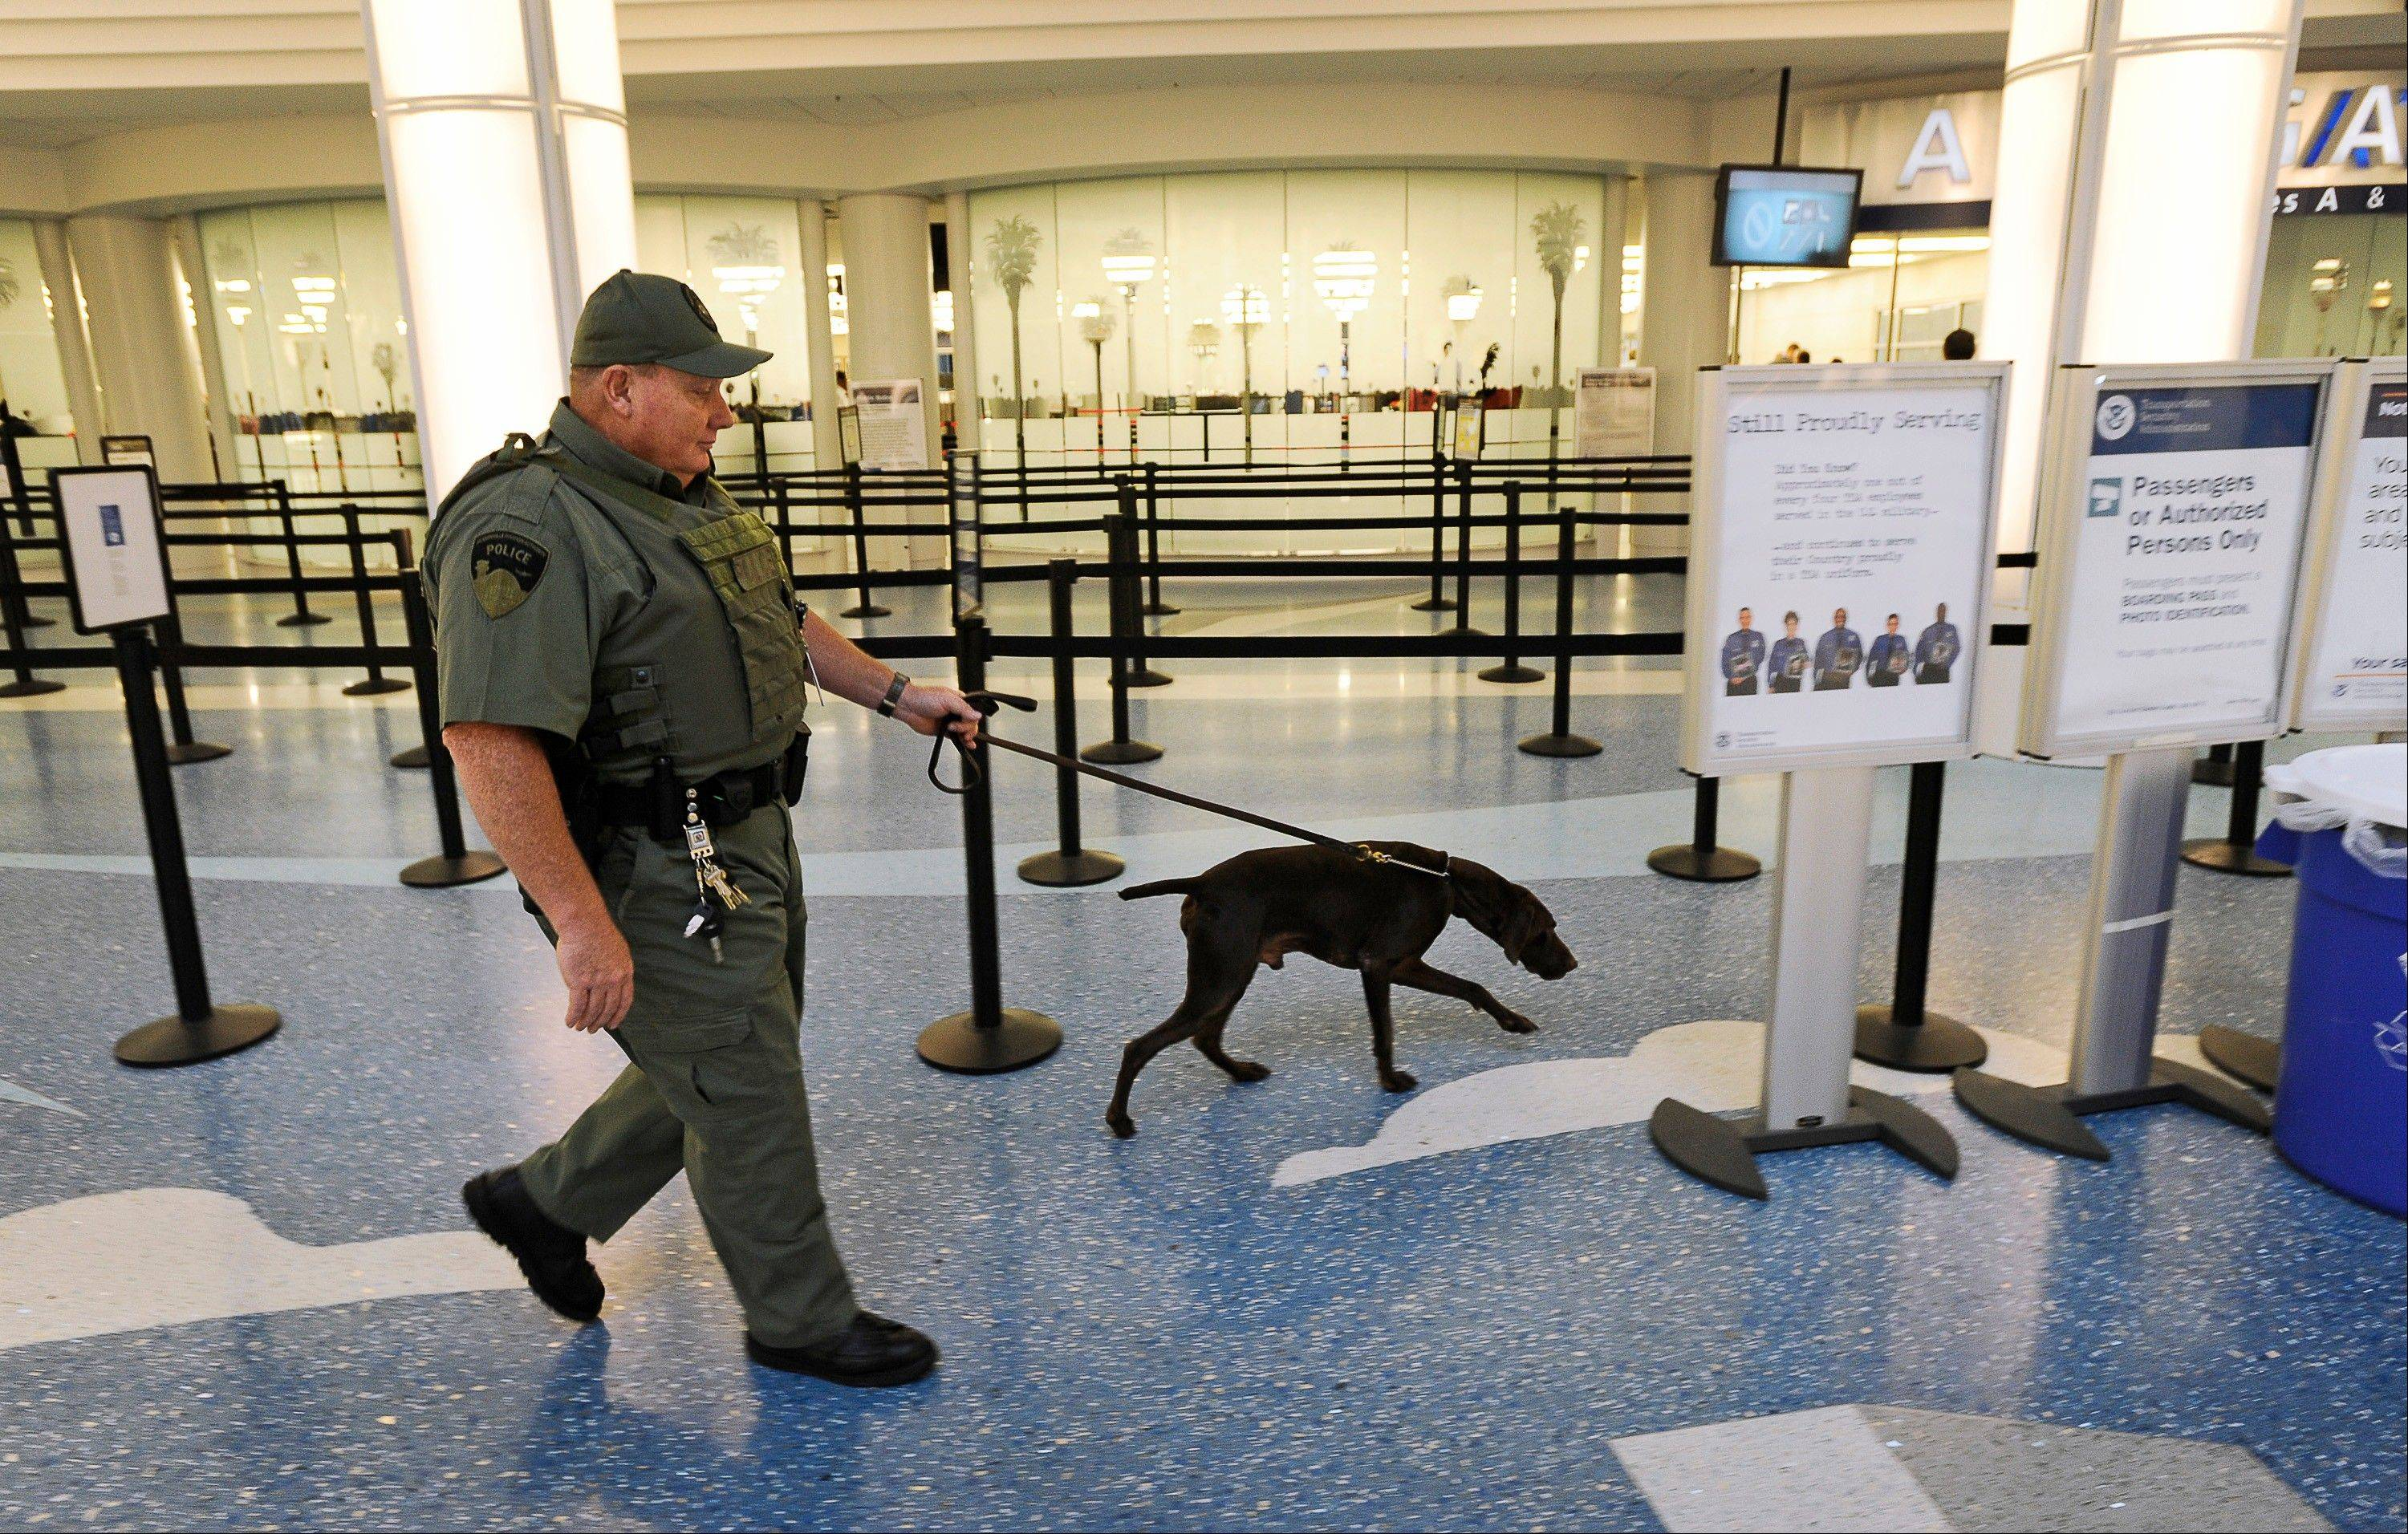 Jacksonville International Airport police officer Tim Hodges walks around the terminal with a bomb dog at Jacksonville International Airport on Wednesday, Oct. 2, 2013. Authorities said a man arrested at Jacksonville International Airport told security screeners he had a bomb in his backpack but they only found a luggage scale with a microchip inside, along with a remote-control device he called a �detonator.�